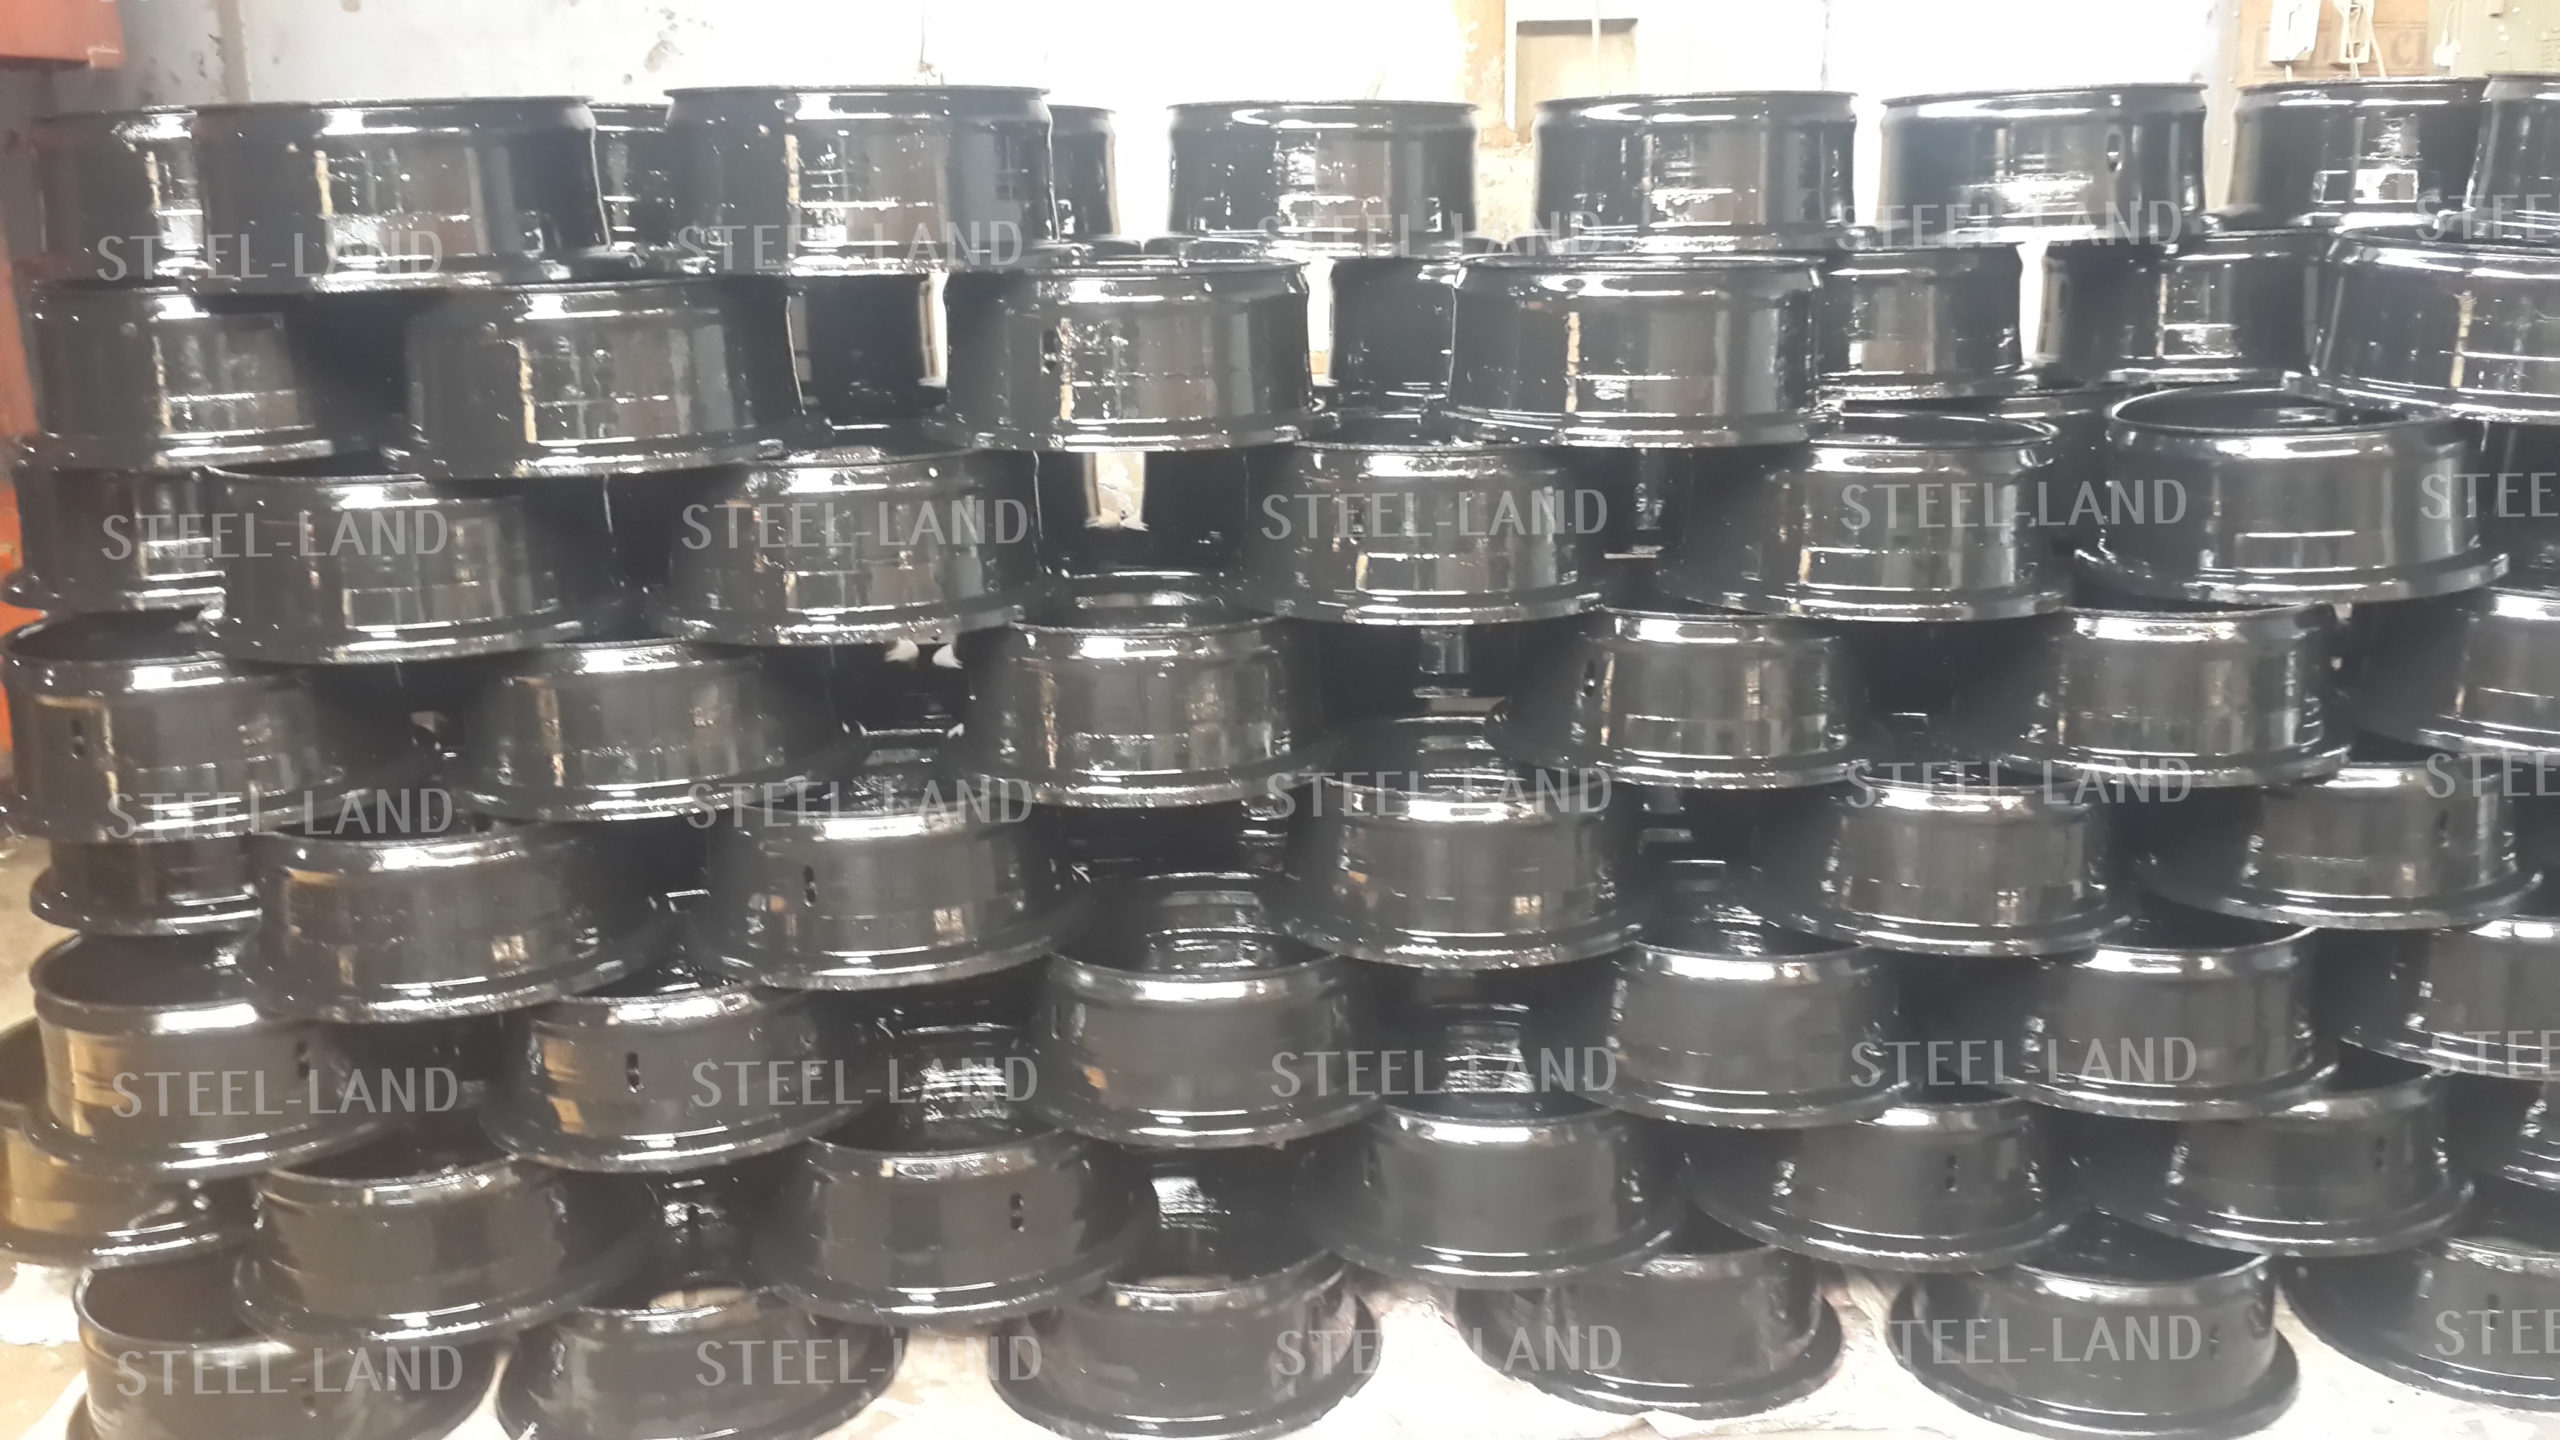 STEEL LAND Wheel rim For Tractor trolley Trailer www.steellandindustries.com 1.jpg